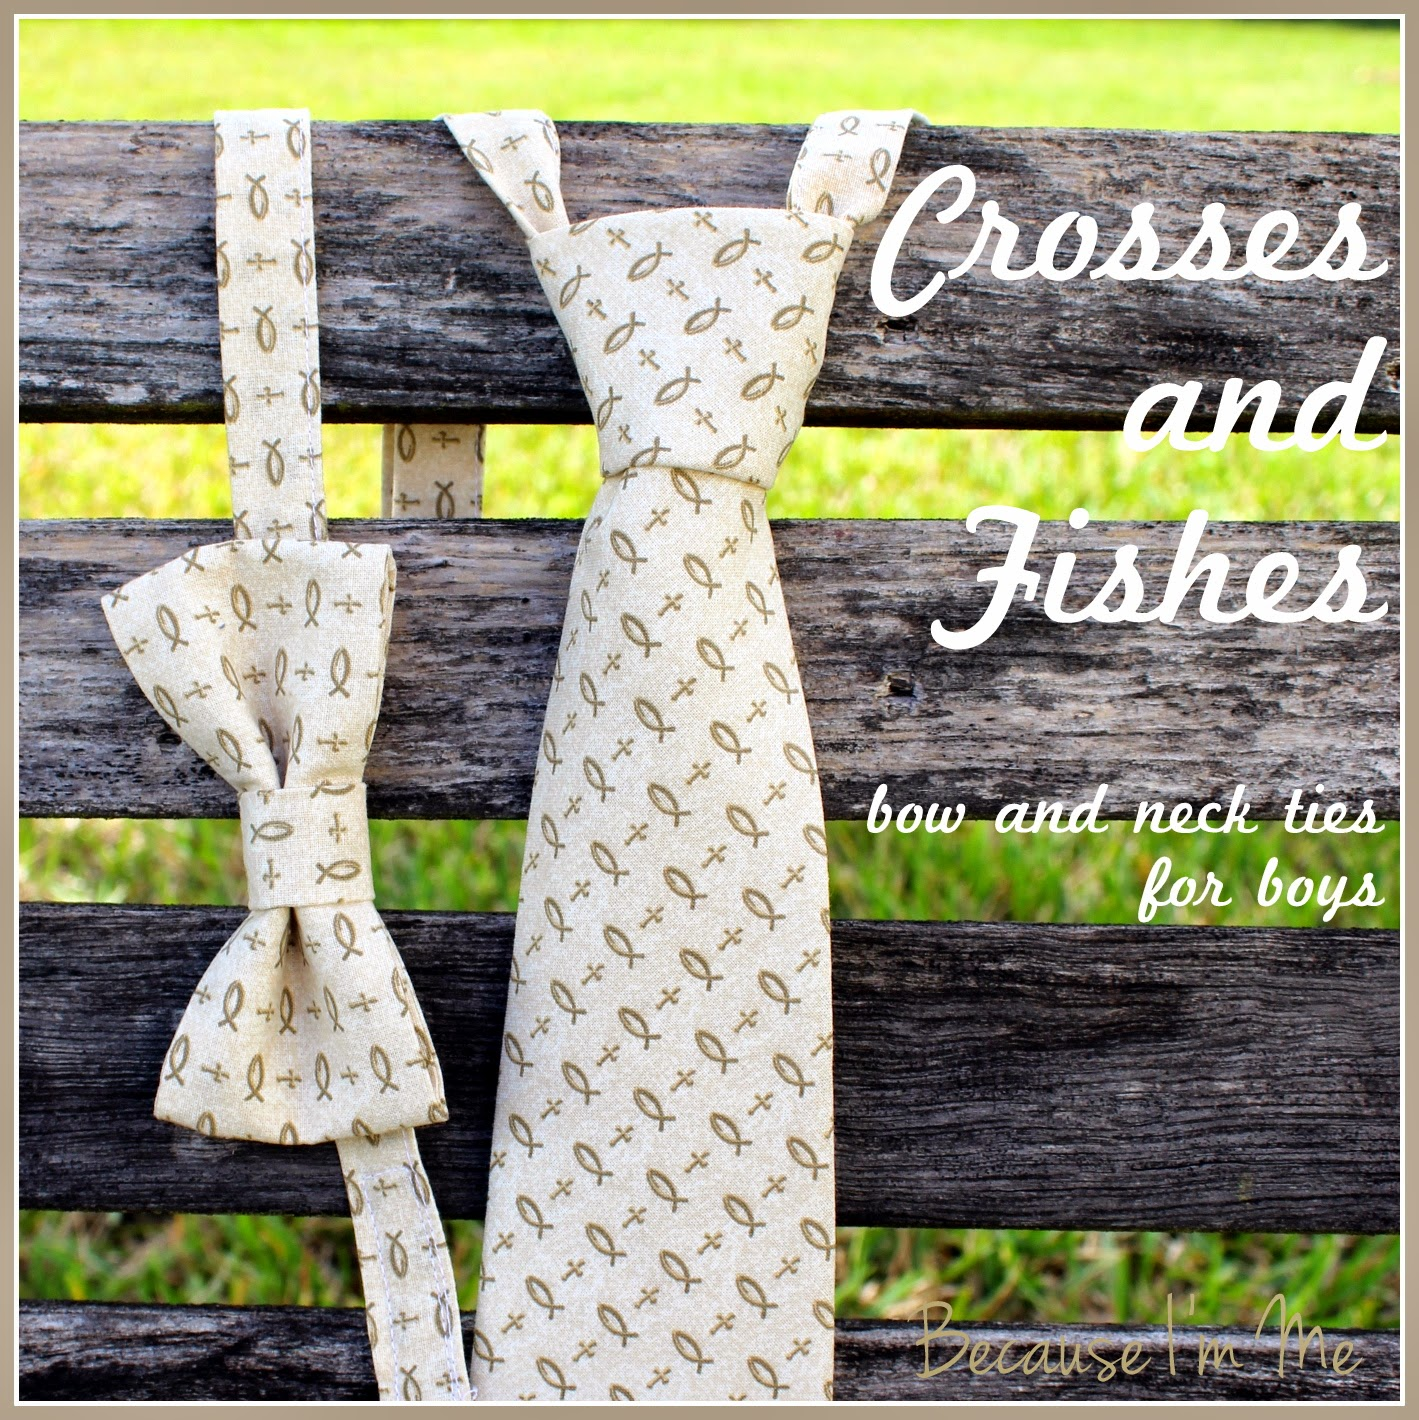 Crosses and Fishes Christian Bowties and Neckties